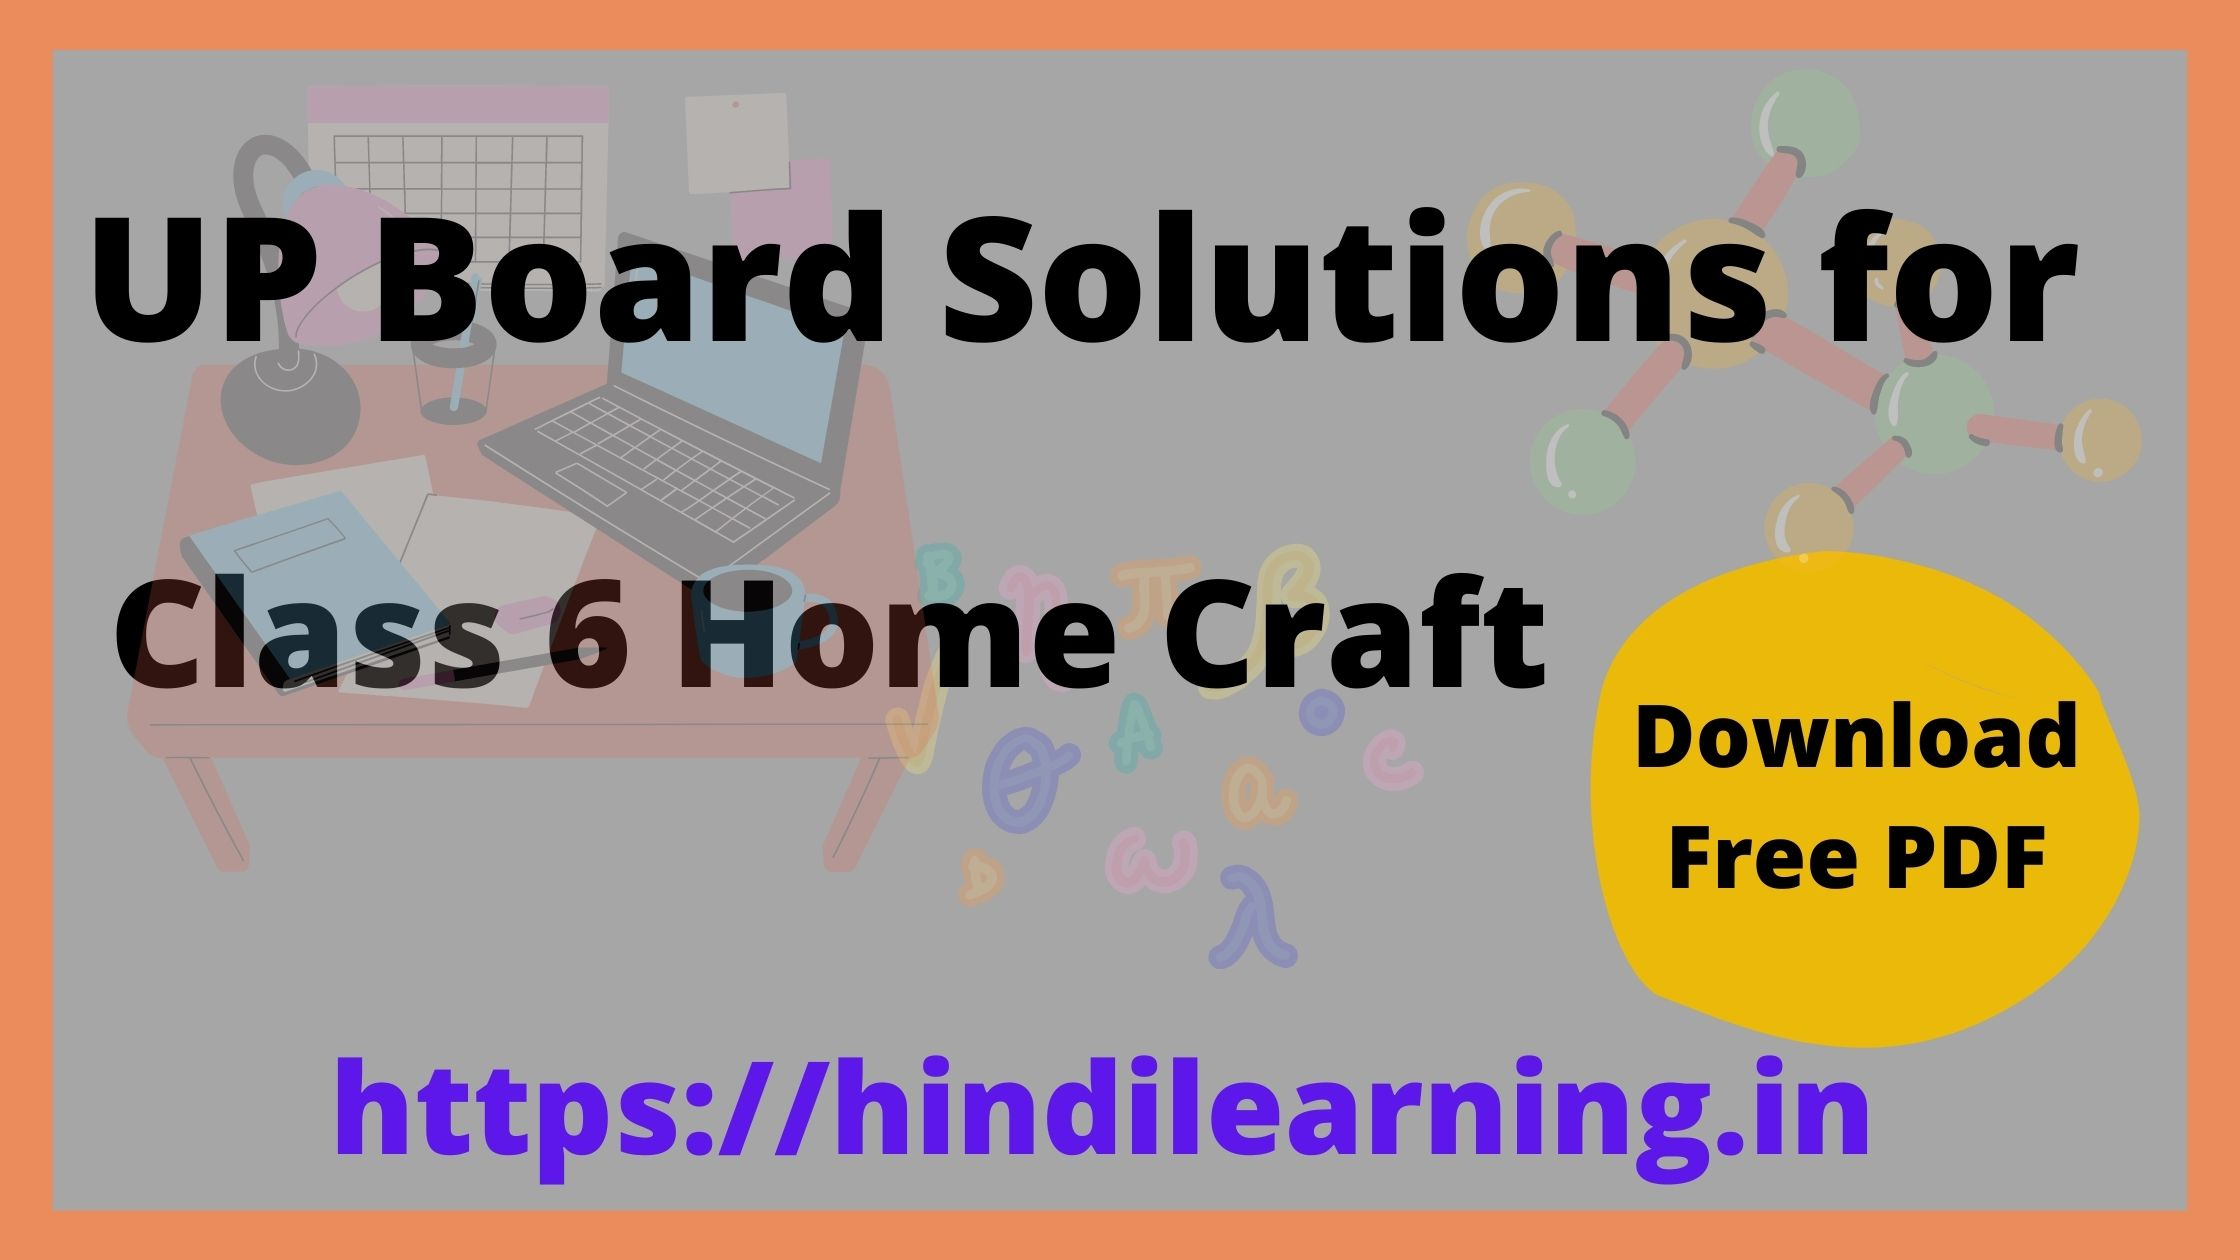 UP Board Solutions for Class 6 Home Craft ( गृहशिल्प )